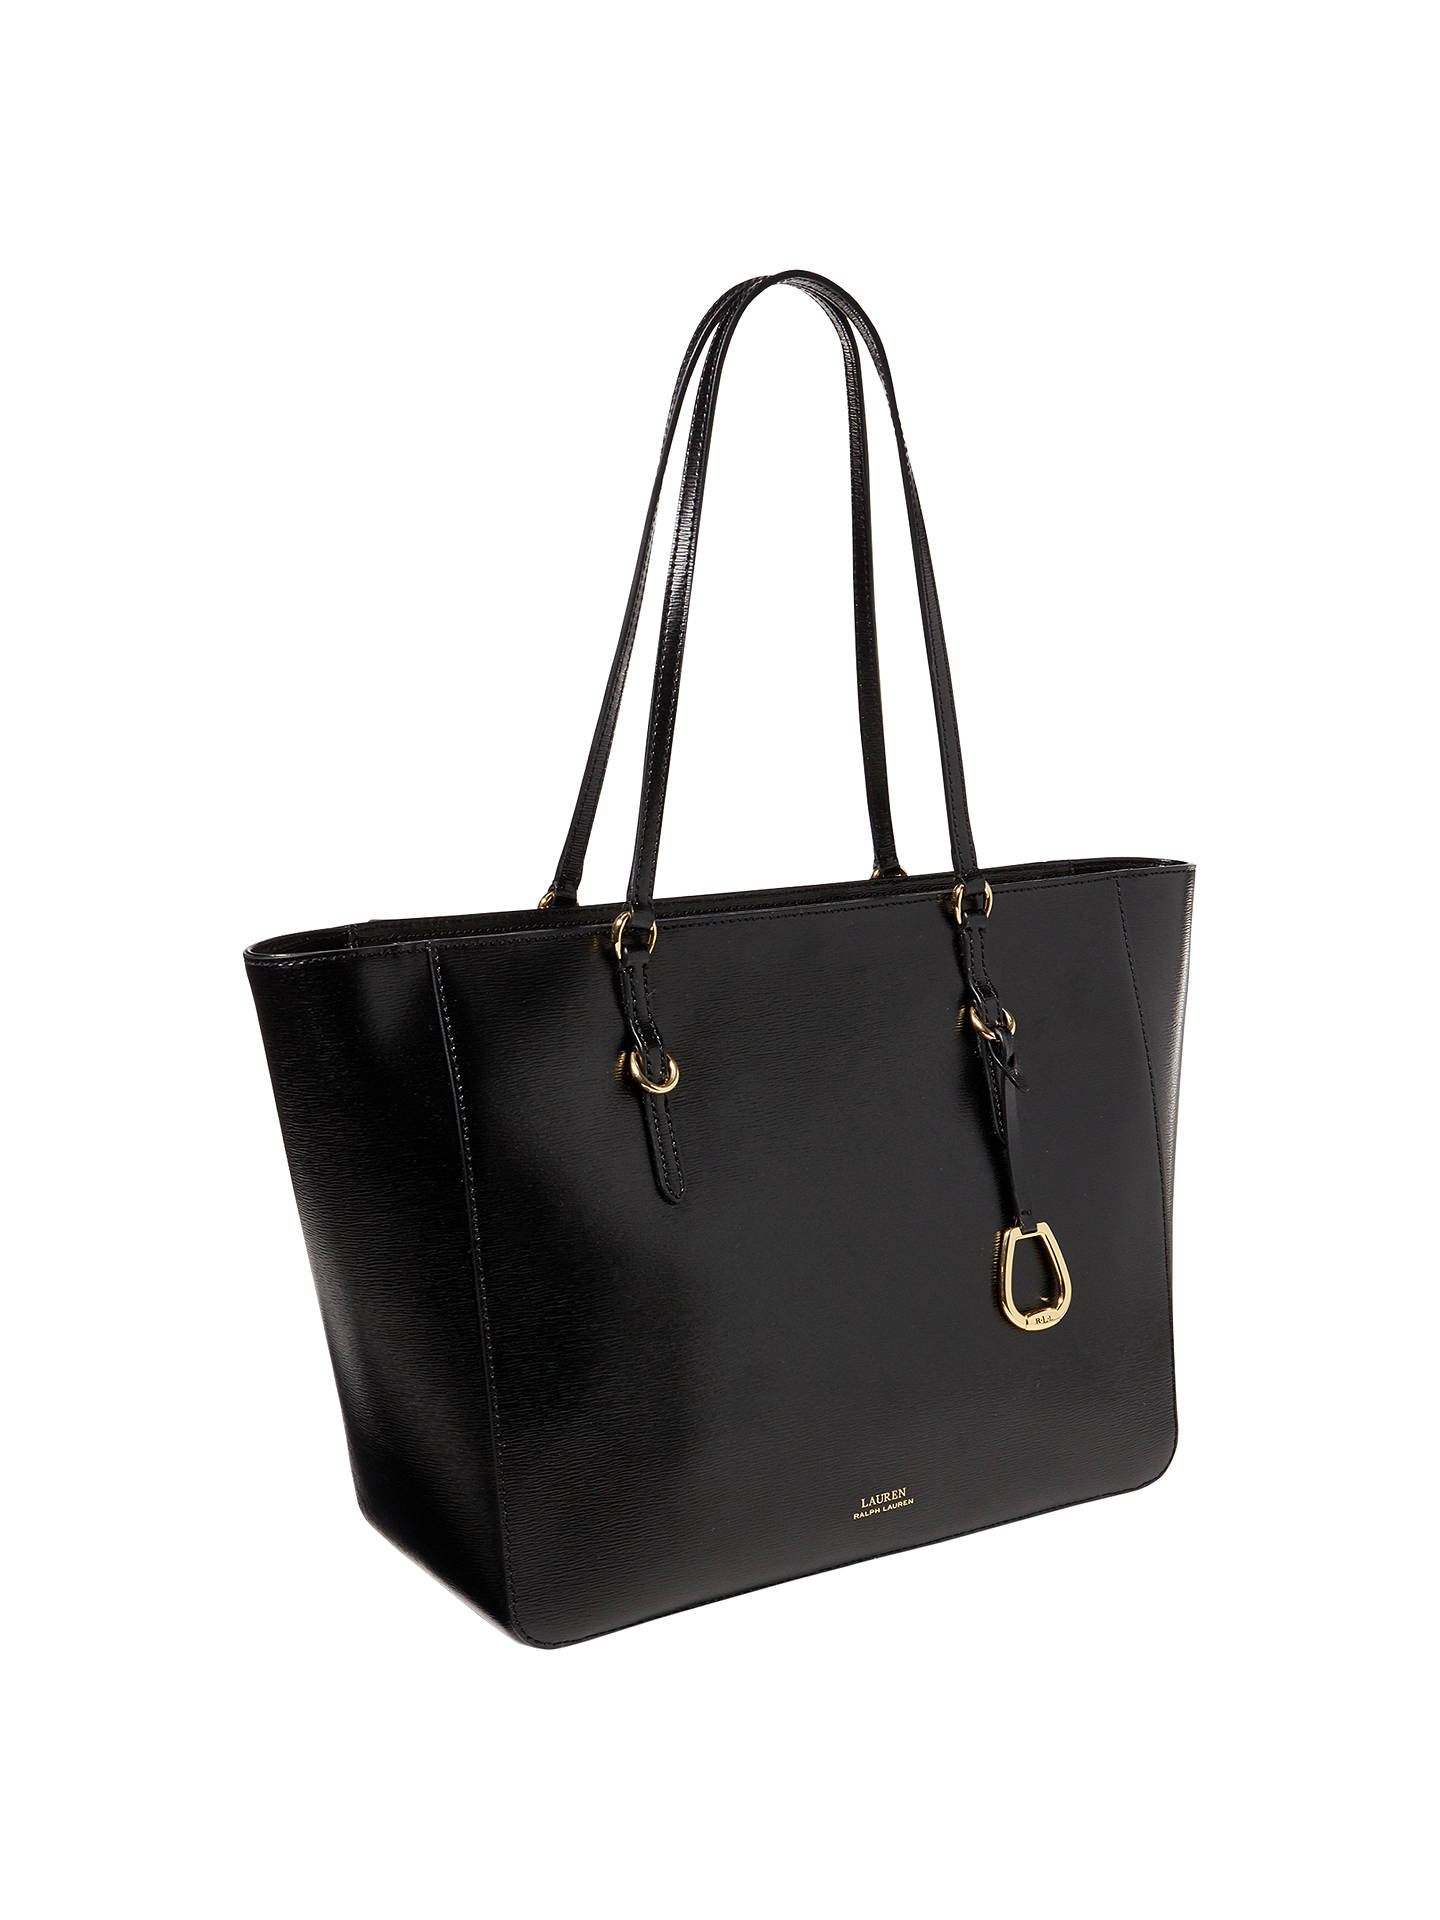 Lauren Ralph Saffiano Leather Tote Bag Black Online At Johnlewis